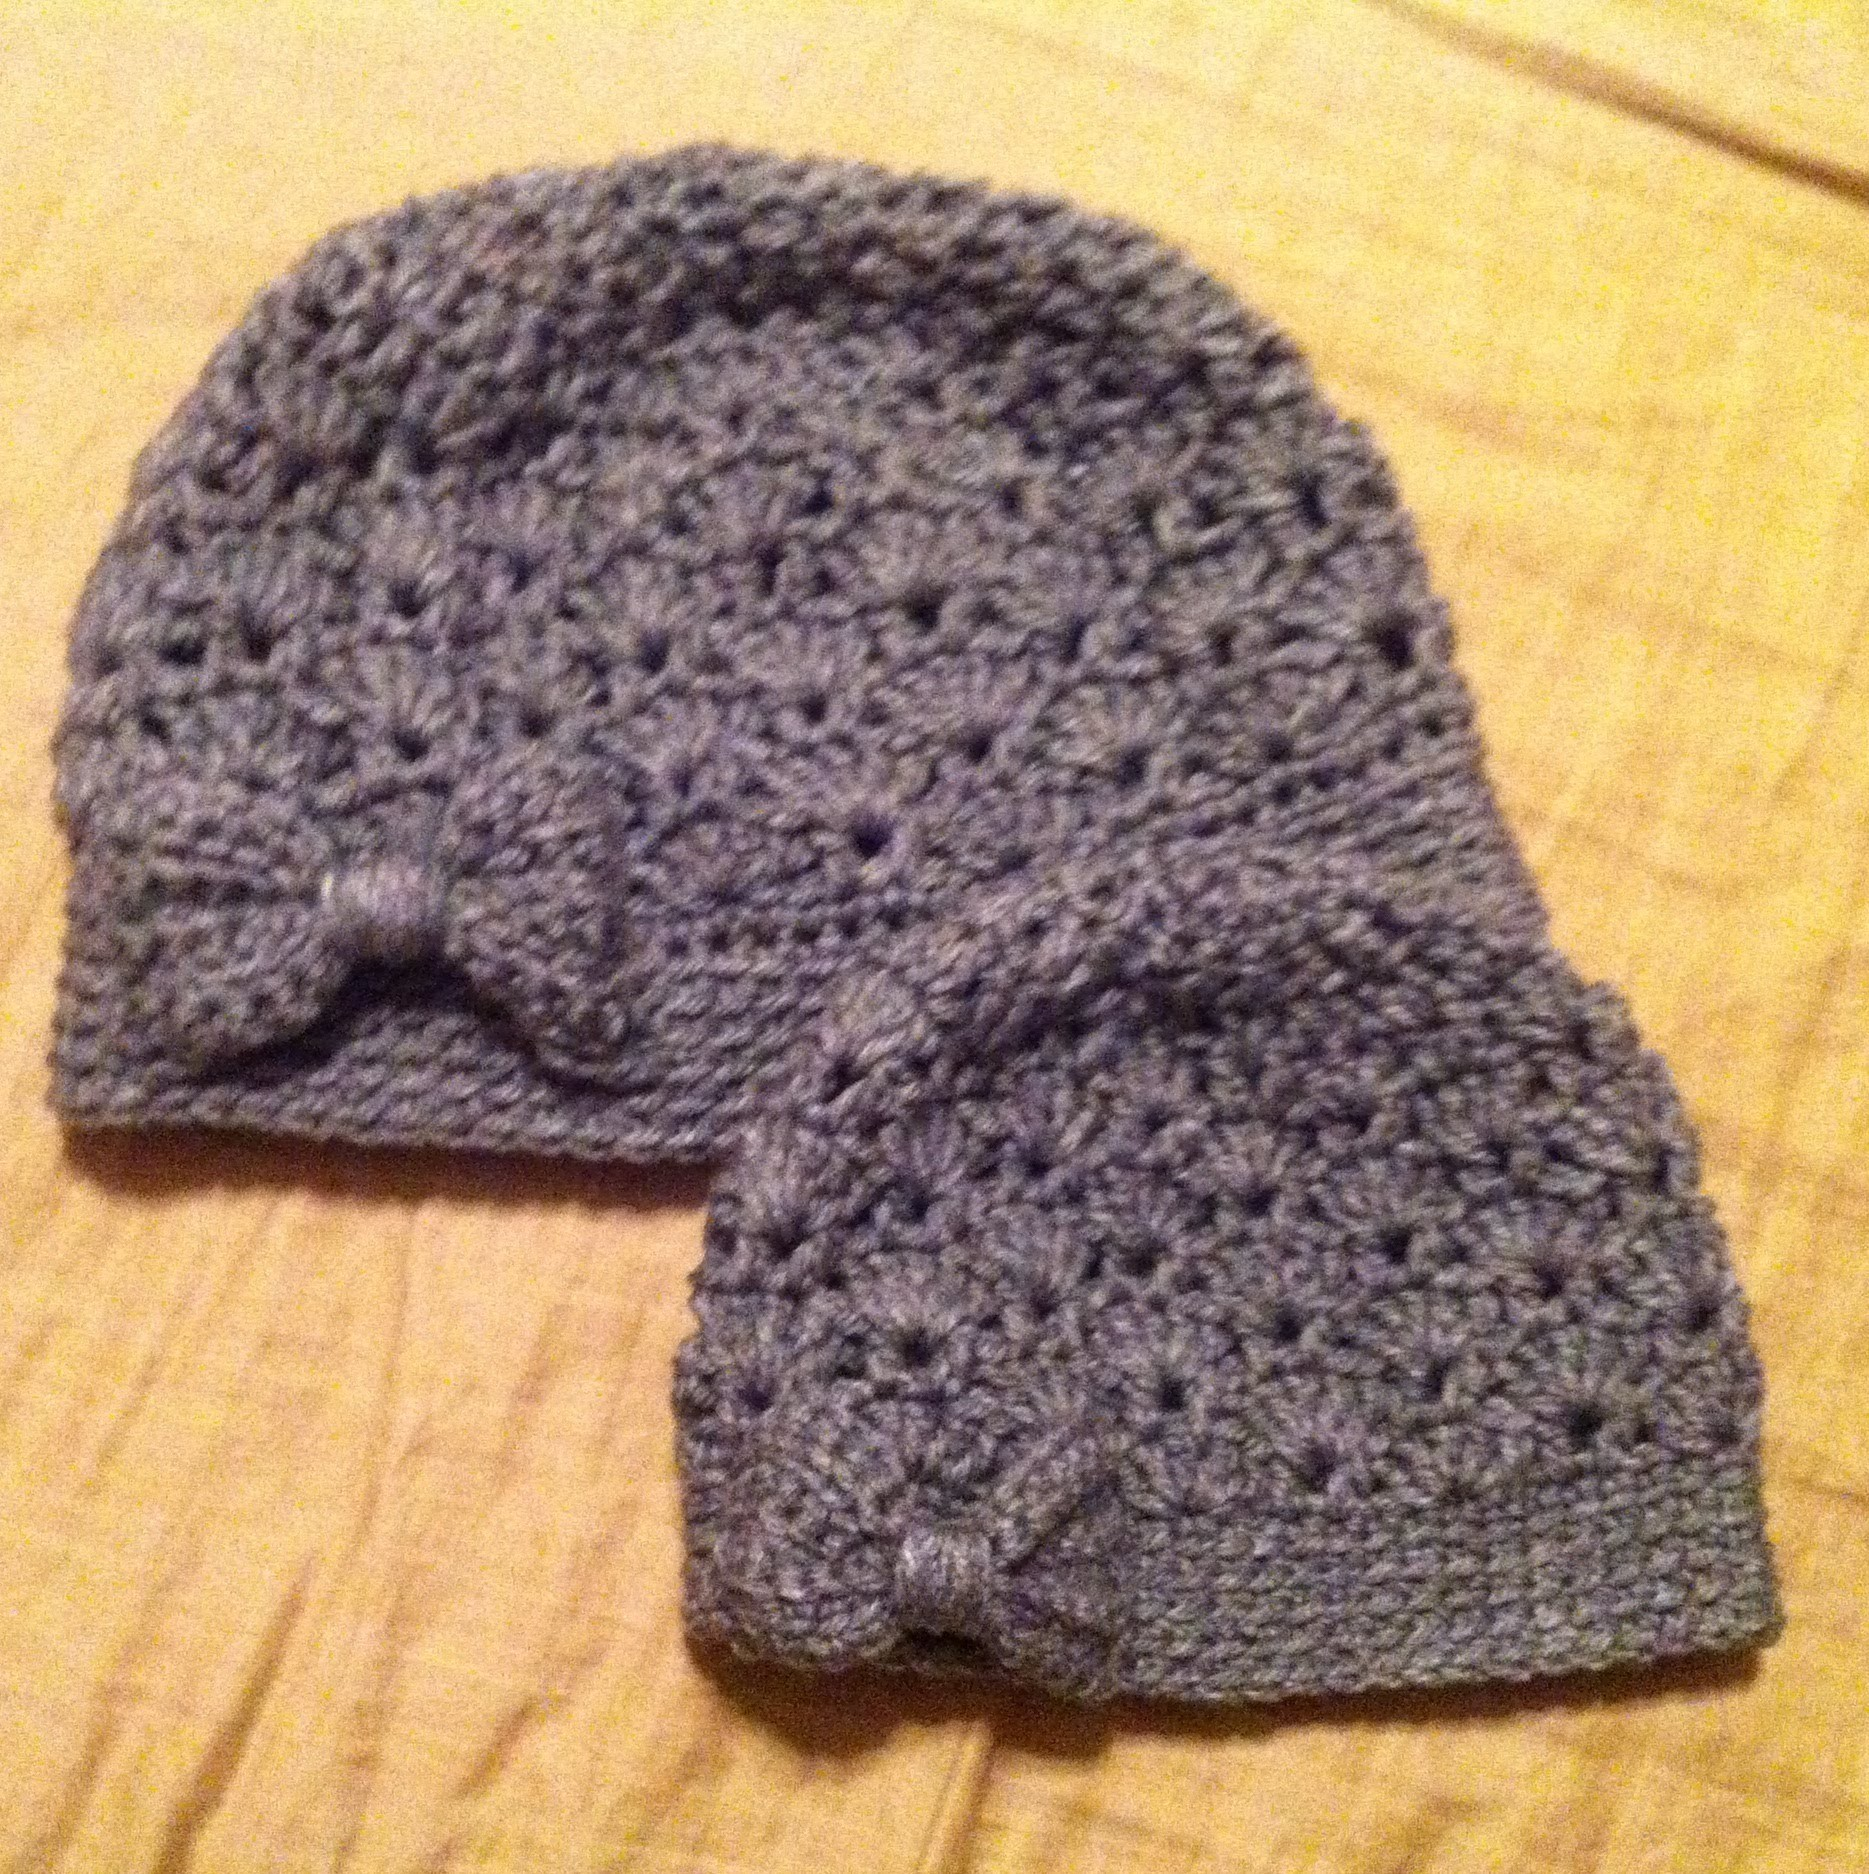 TUTORIAL #57 (SHELLEY SHELL BEANIE)